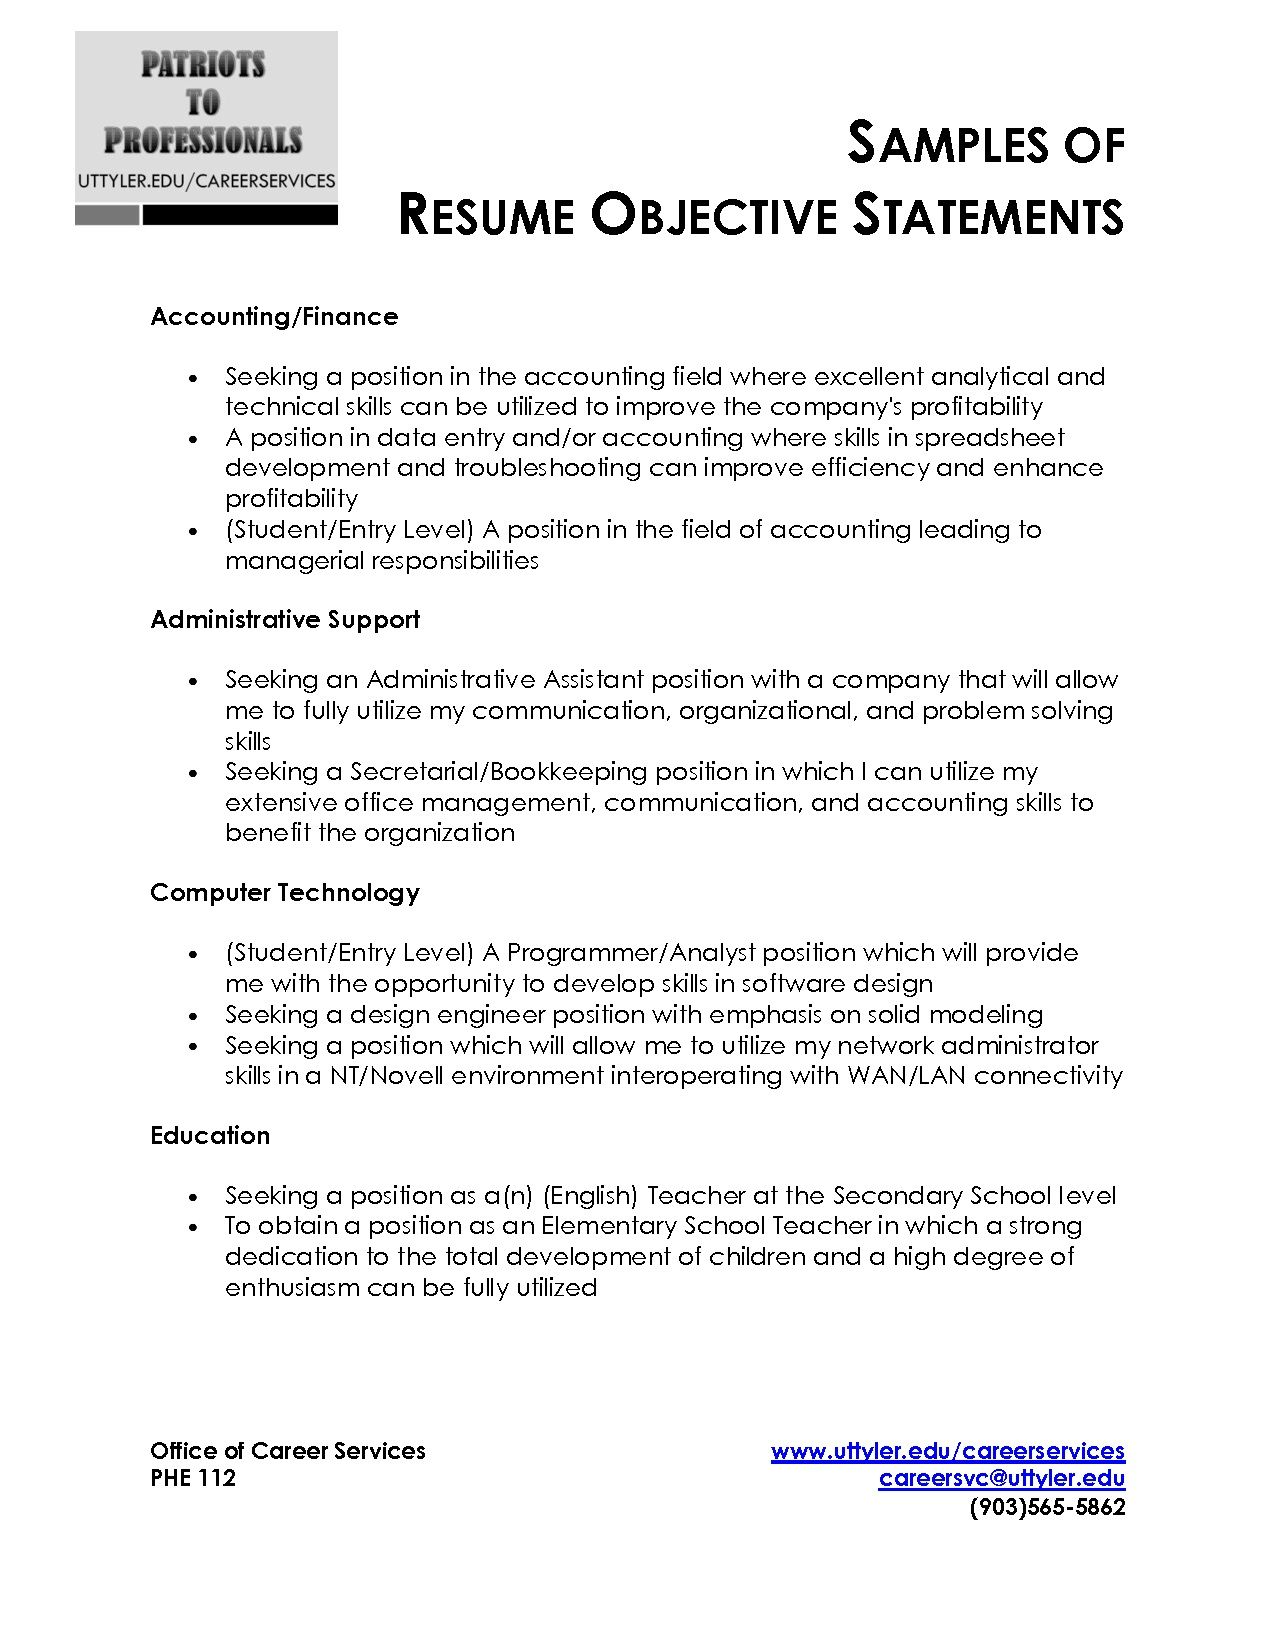 Good General Objective For Resume Pin By Rachel Franco On Resume Writing Sample Resume